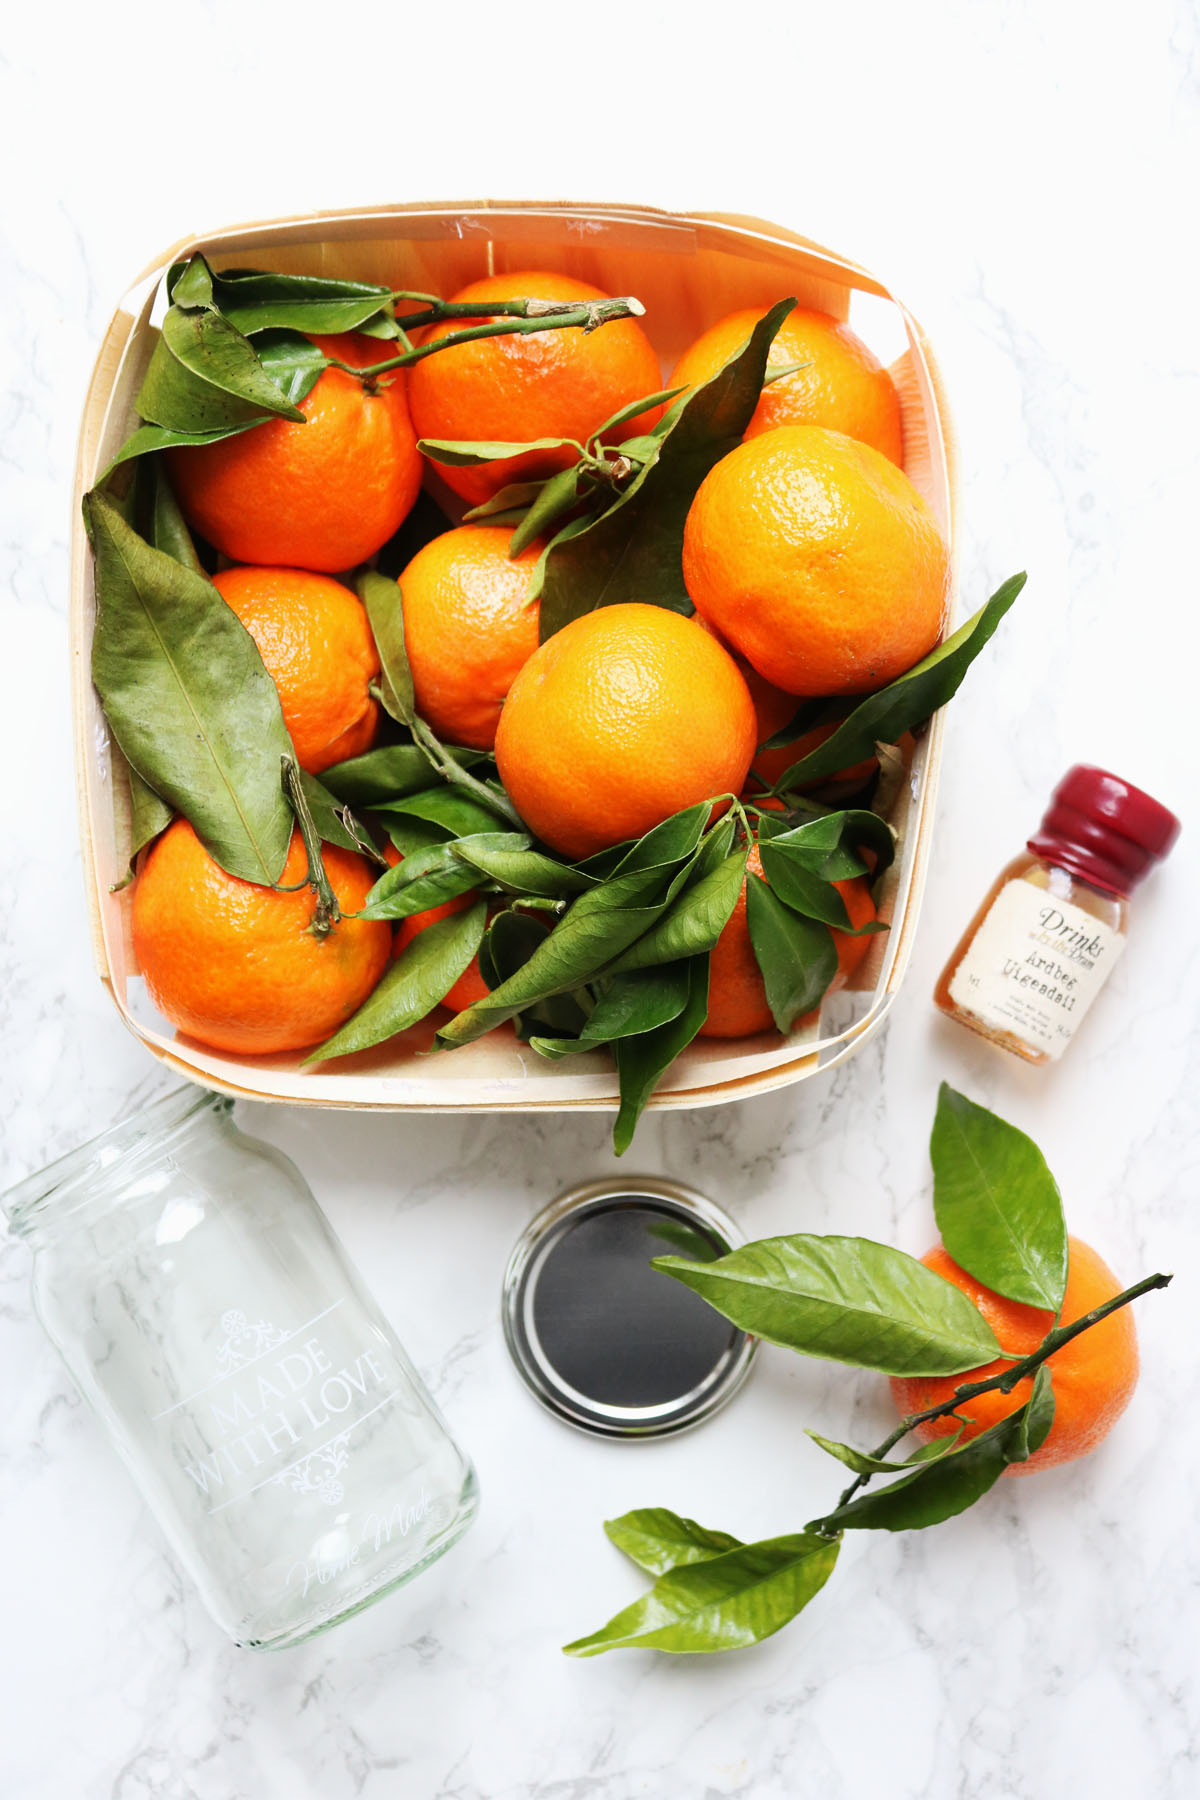 How to make whisky marmalade with clementines